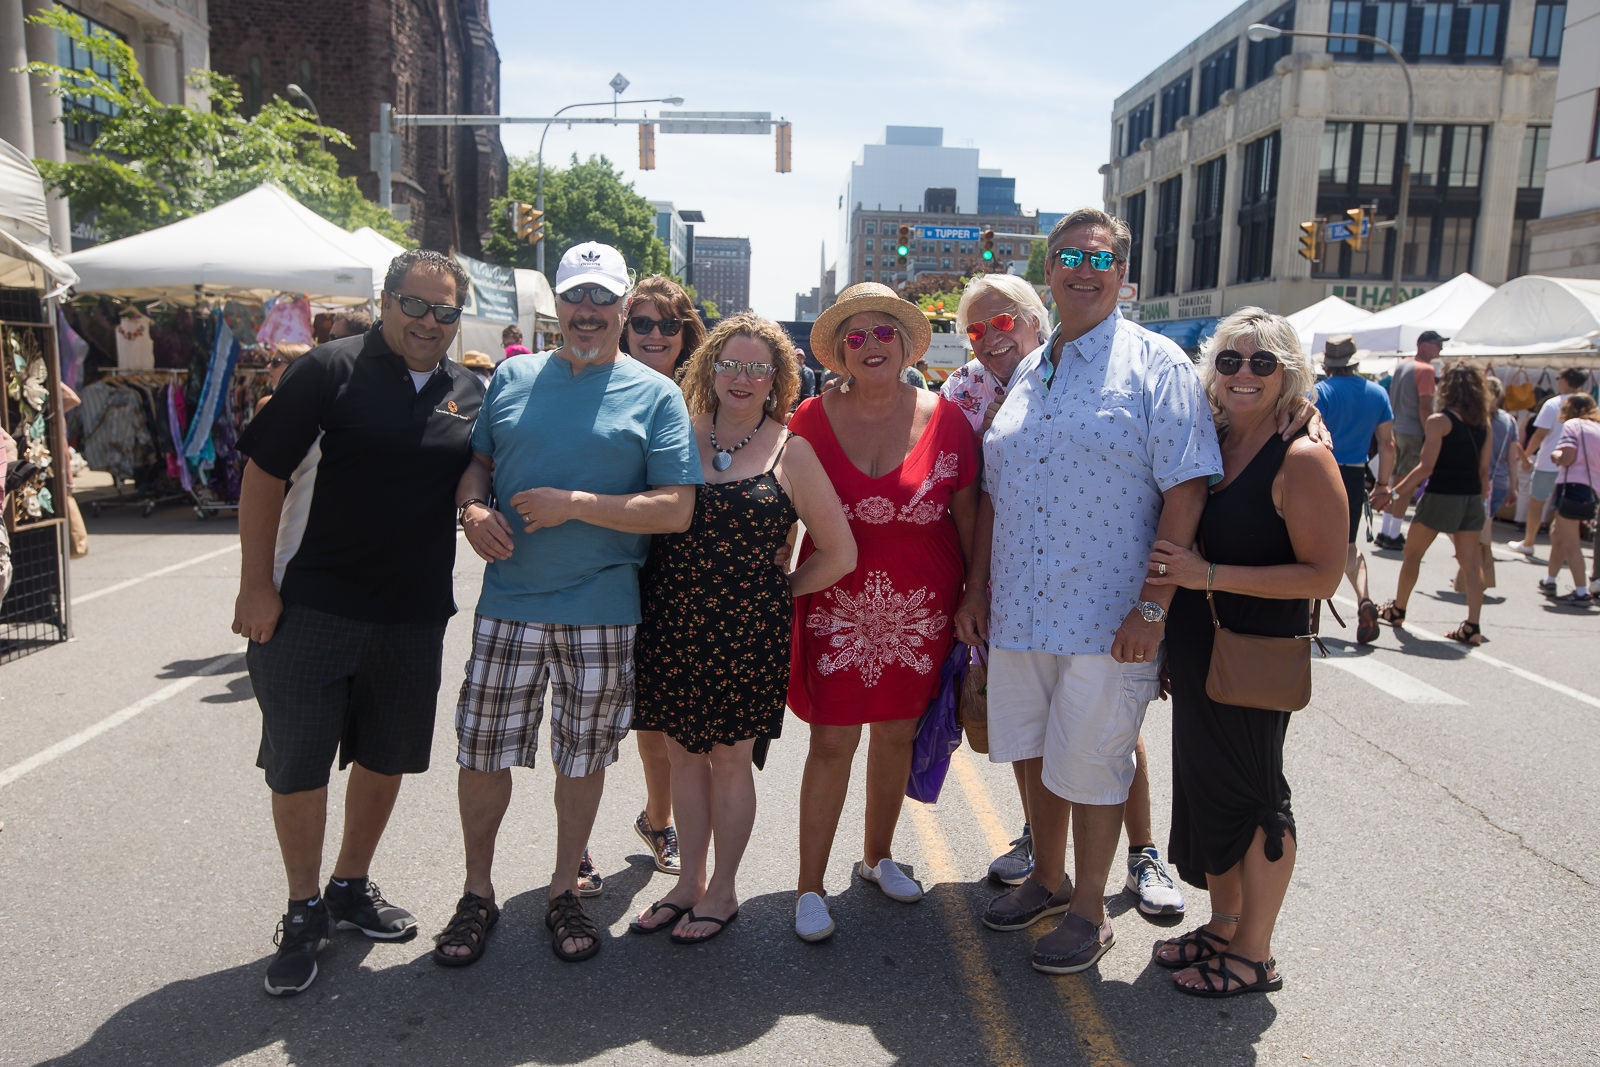 Allen Street and Delaware Avenue were the chief sites for the Allentown Art Festival's first day of 2019, on Saturday, June 8. See the vendors, shoppers, buskers and others who wandered about. The festival continues from 10 a.m. to 6 p.m. Sunday.